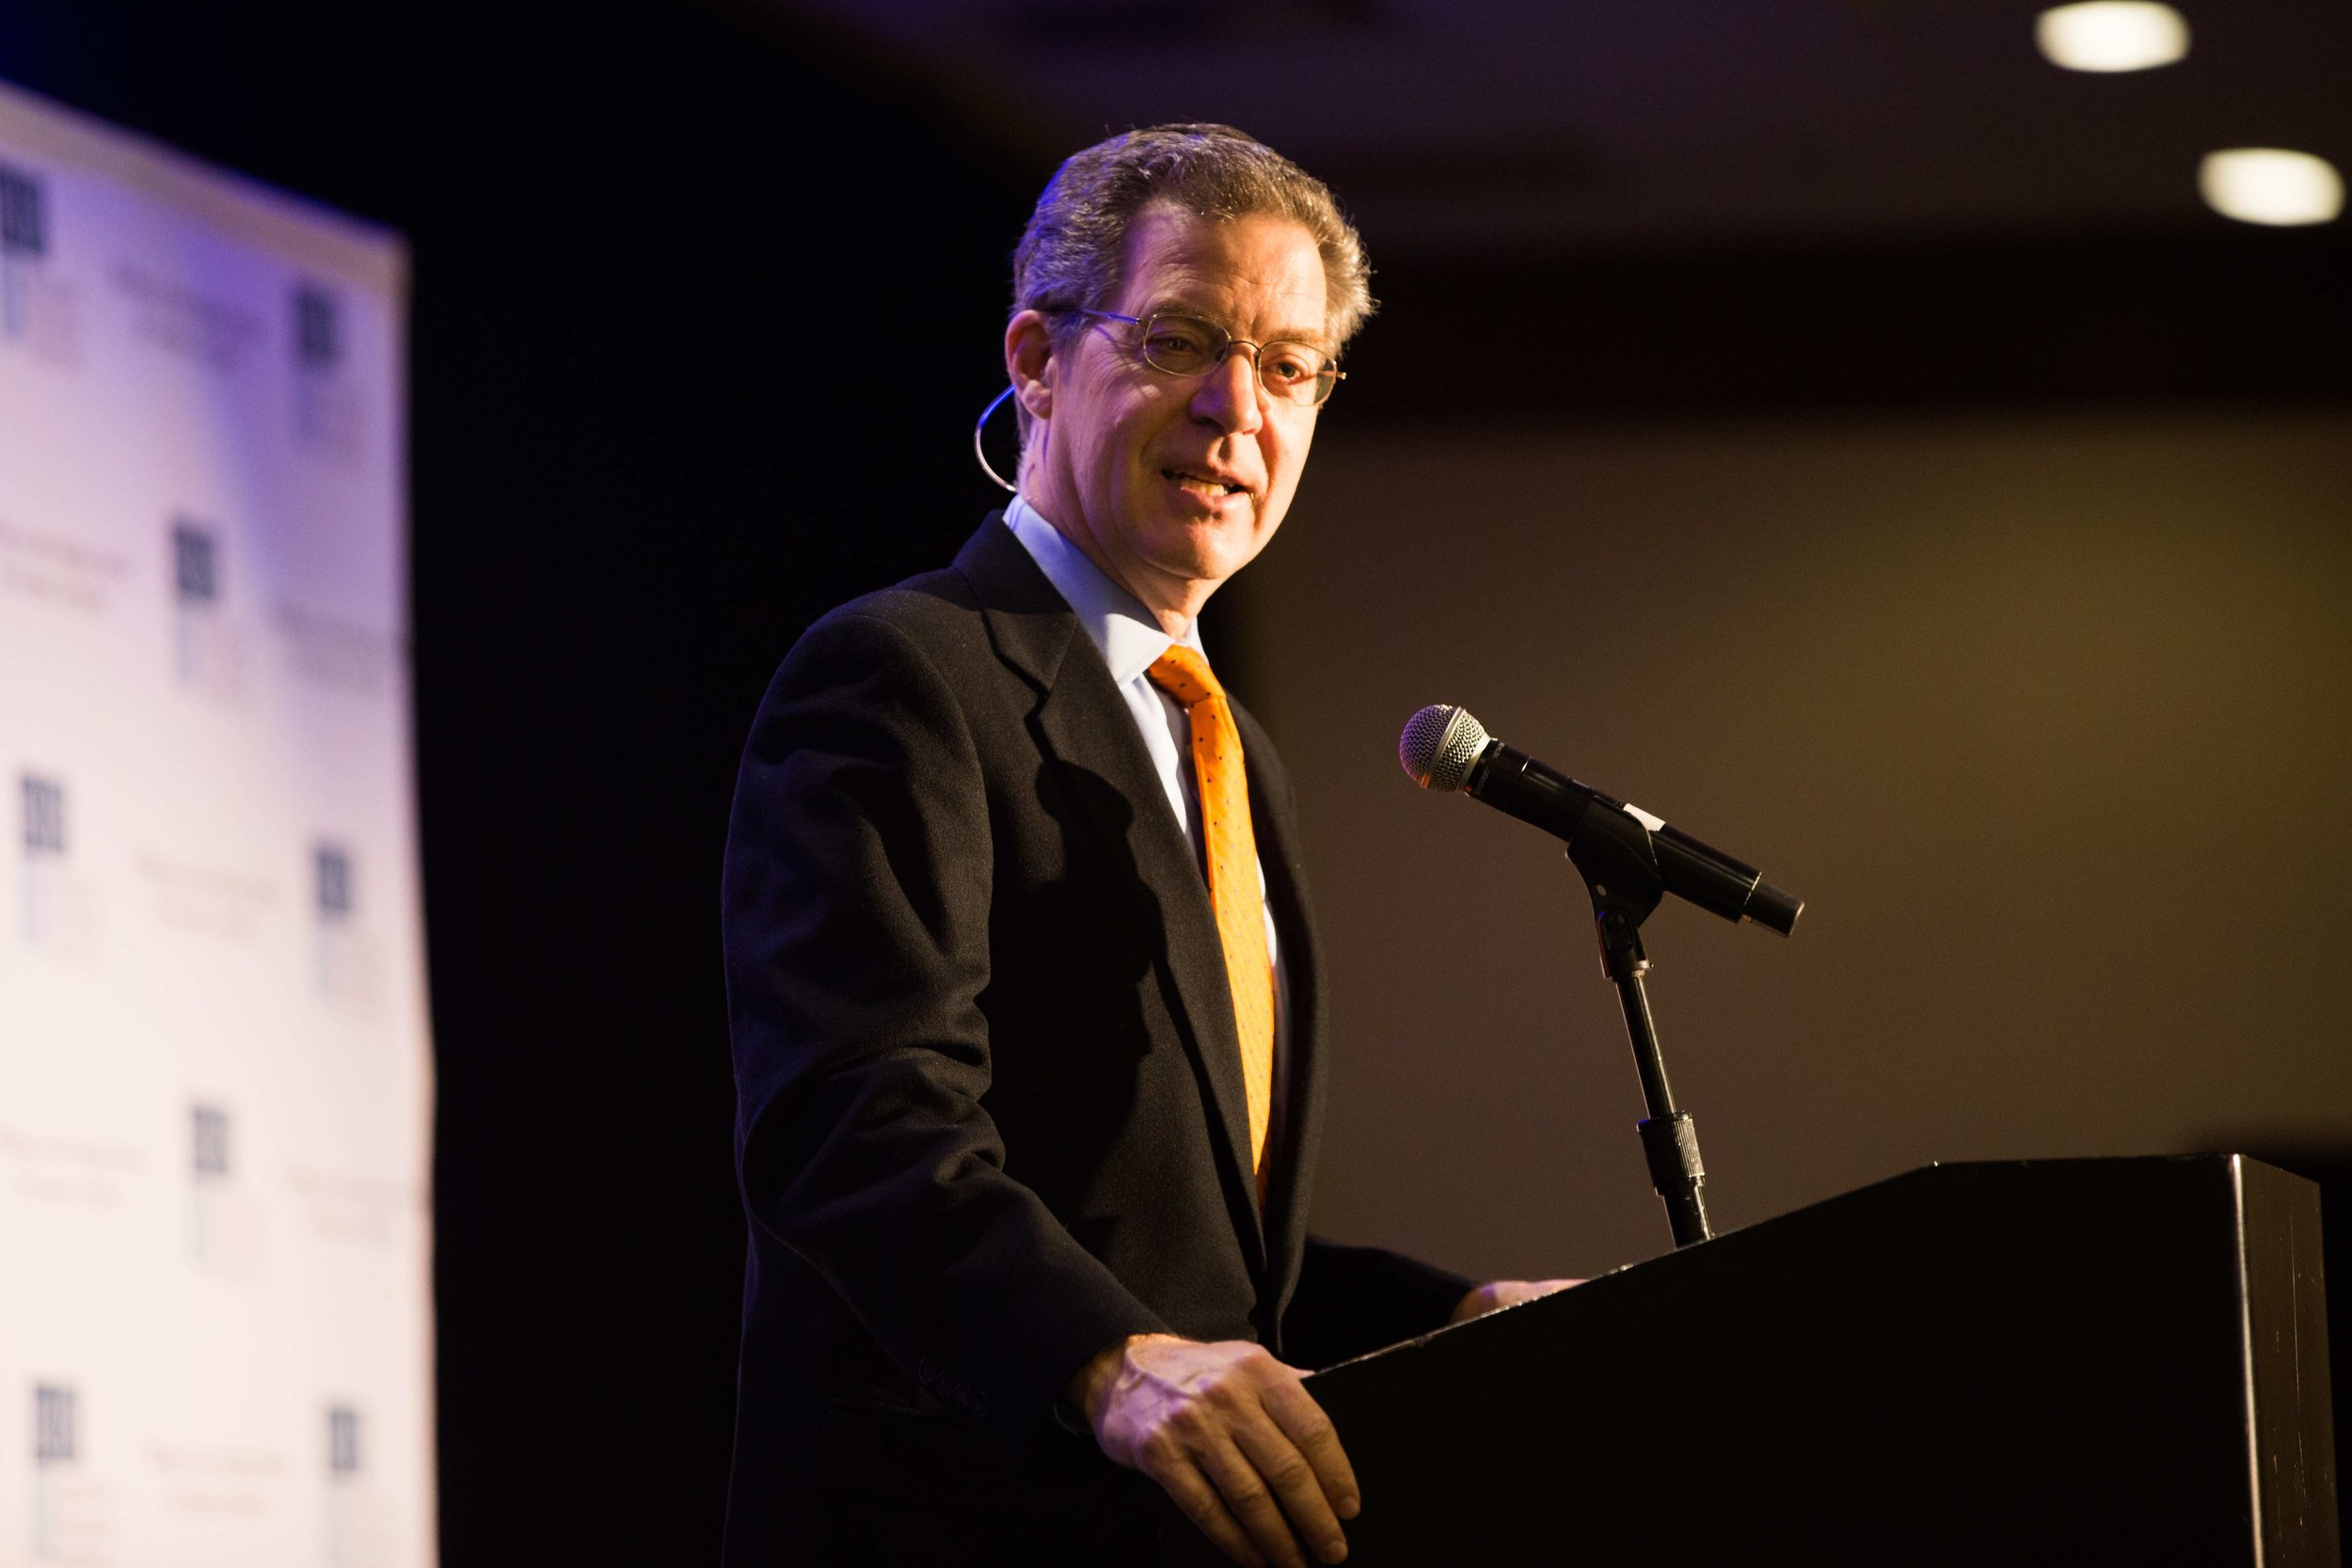 Sam Brownback, Ambassador at Large for International Religious Freedom gives the opening keynote address. Photo: RFI/Margaret Wroblewski